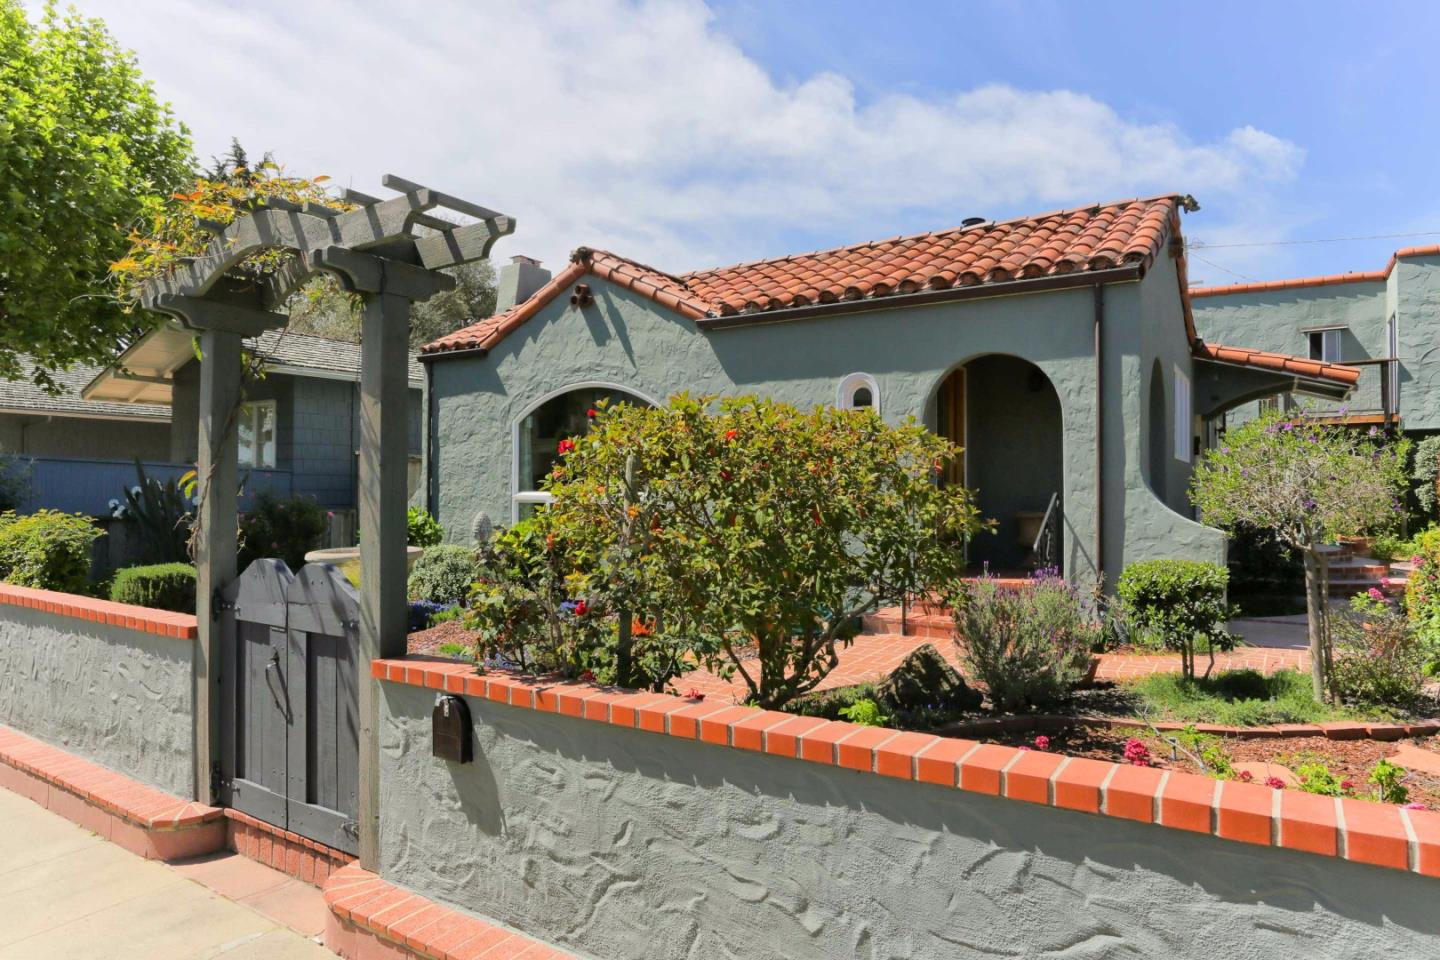 Casa Unifamiliar por un Venta en 113 4th Avenue Santa Cruz, California 95062 Estados Unidos